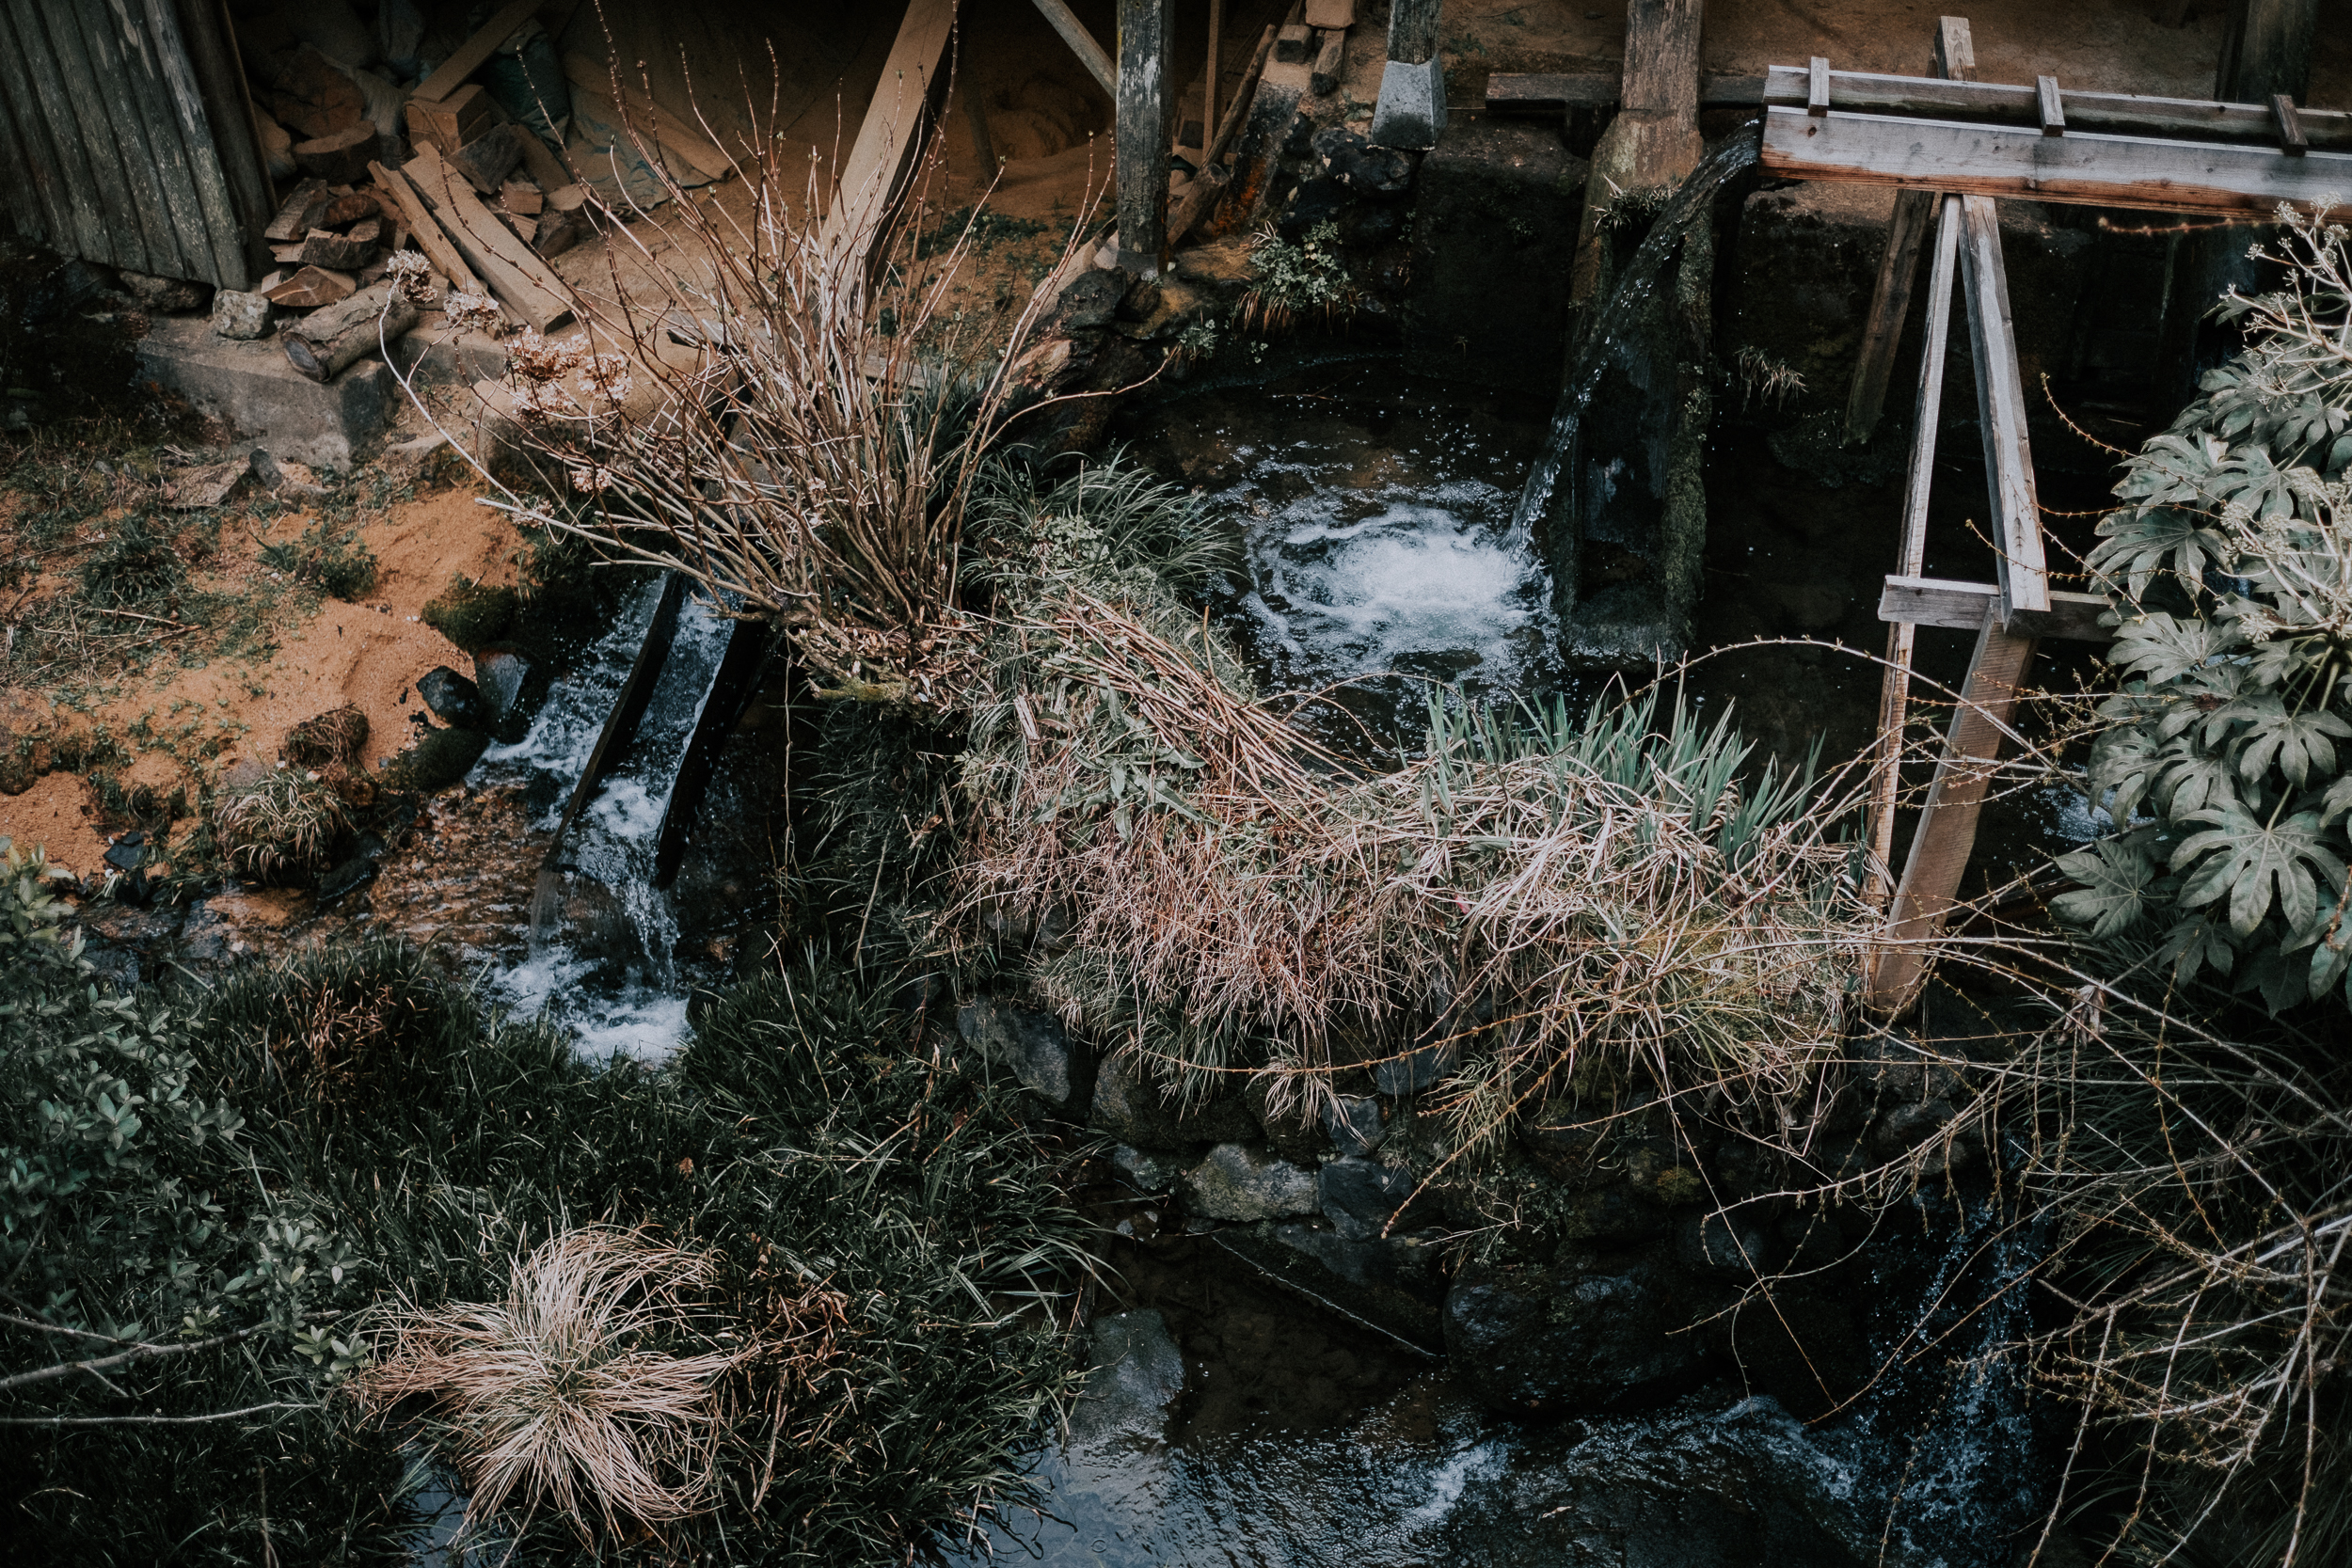 Bamboo channels water through the village to kara-usu grinders.